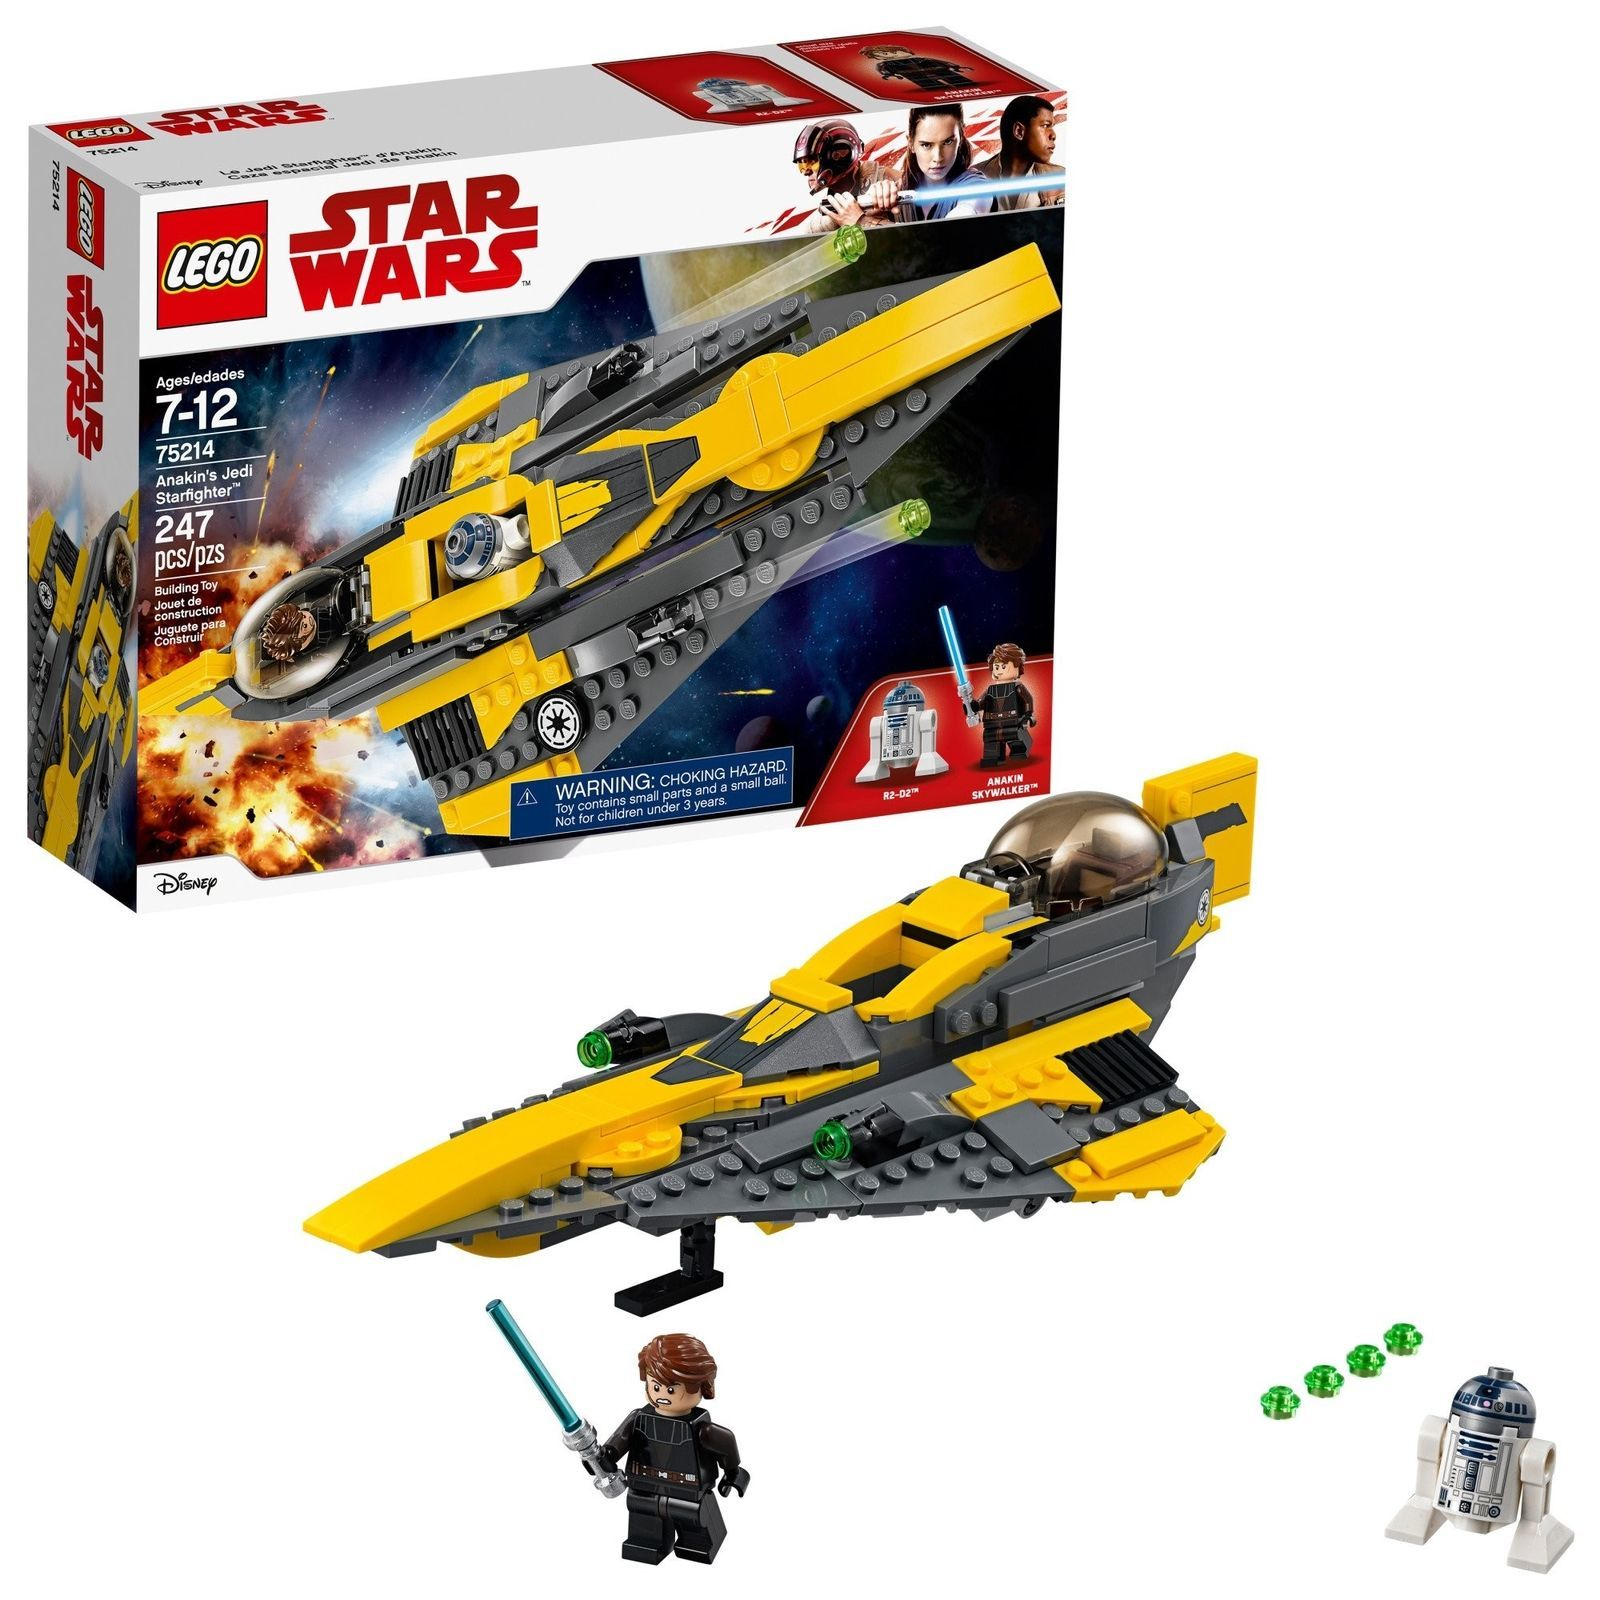 LEGO Star Wars 75214 Anakin's Jedi Starfighter [New] Building Set